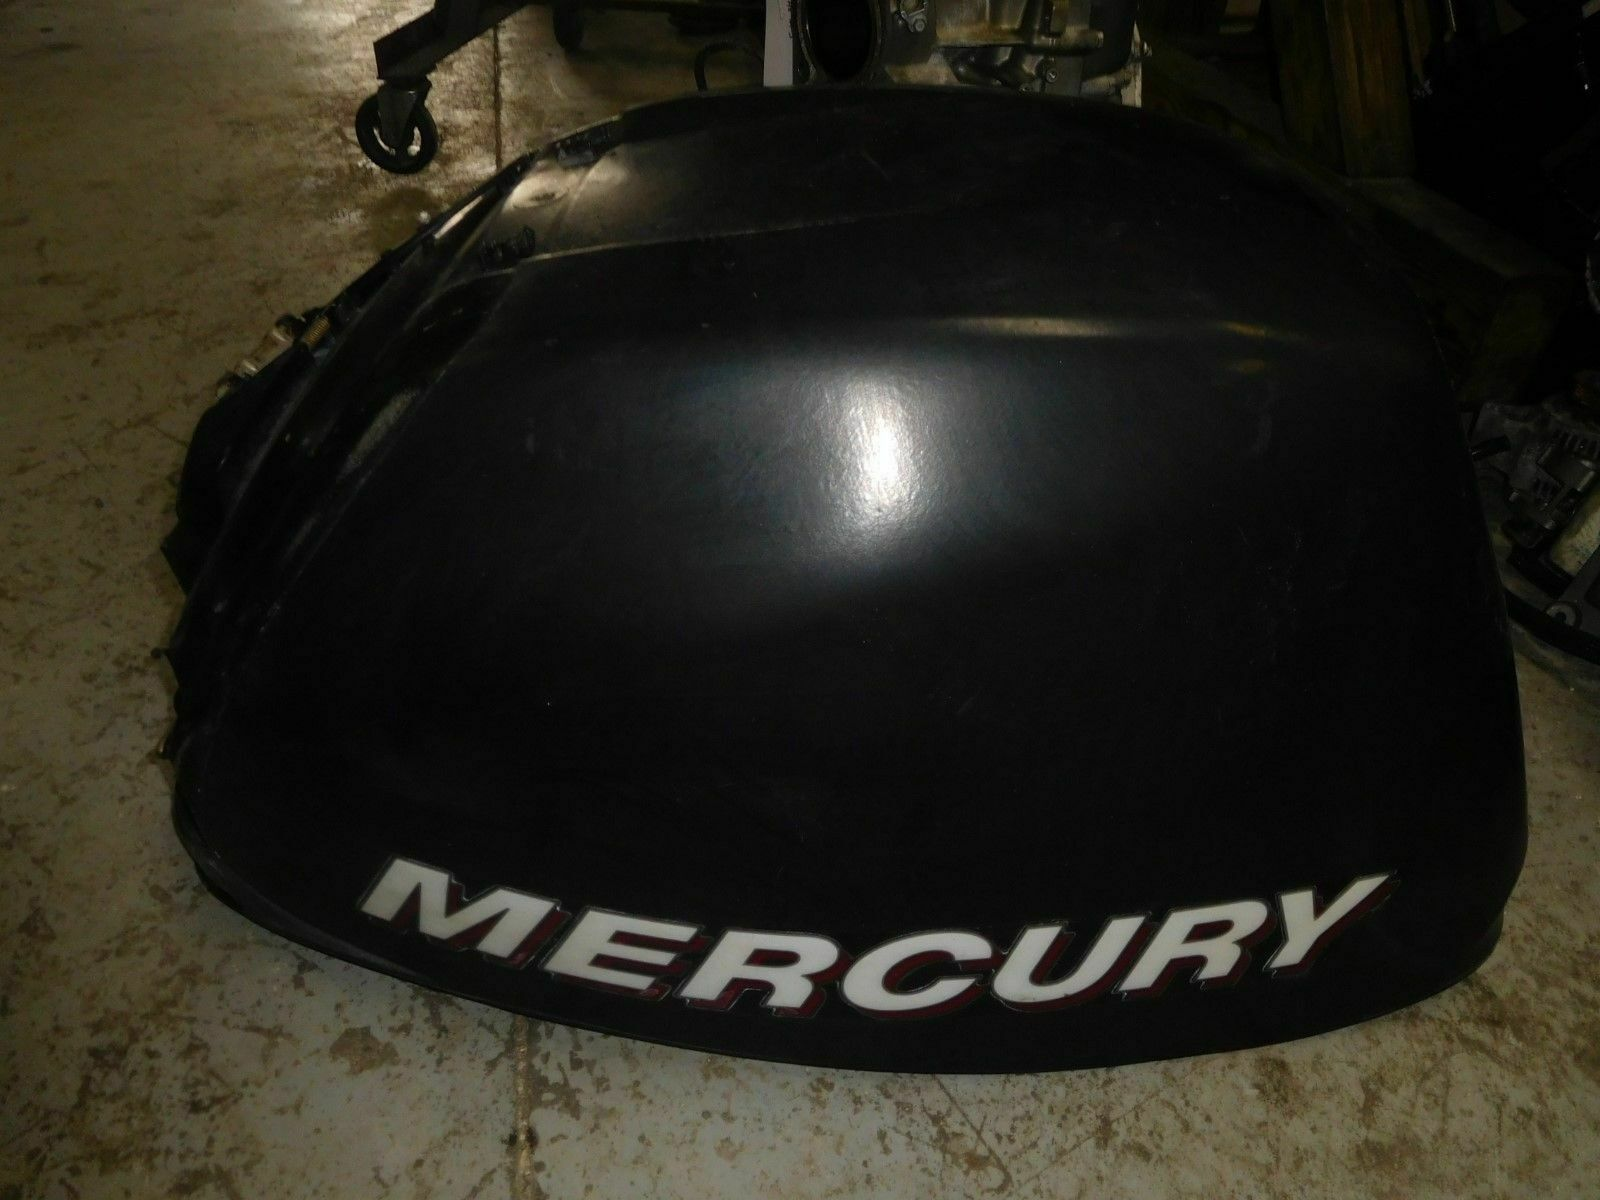 2006 Mercury Verado 275hp Cxlver Outboard 1b428456 Top Cowling Wiring Harness 1 Of 6only Available